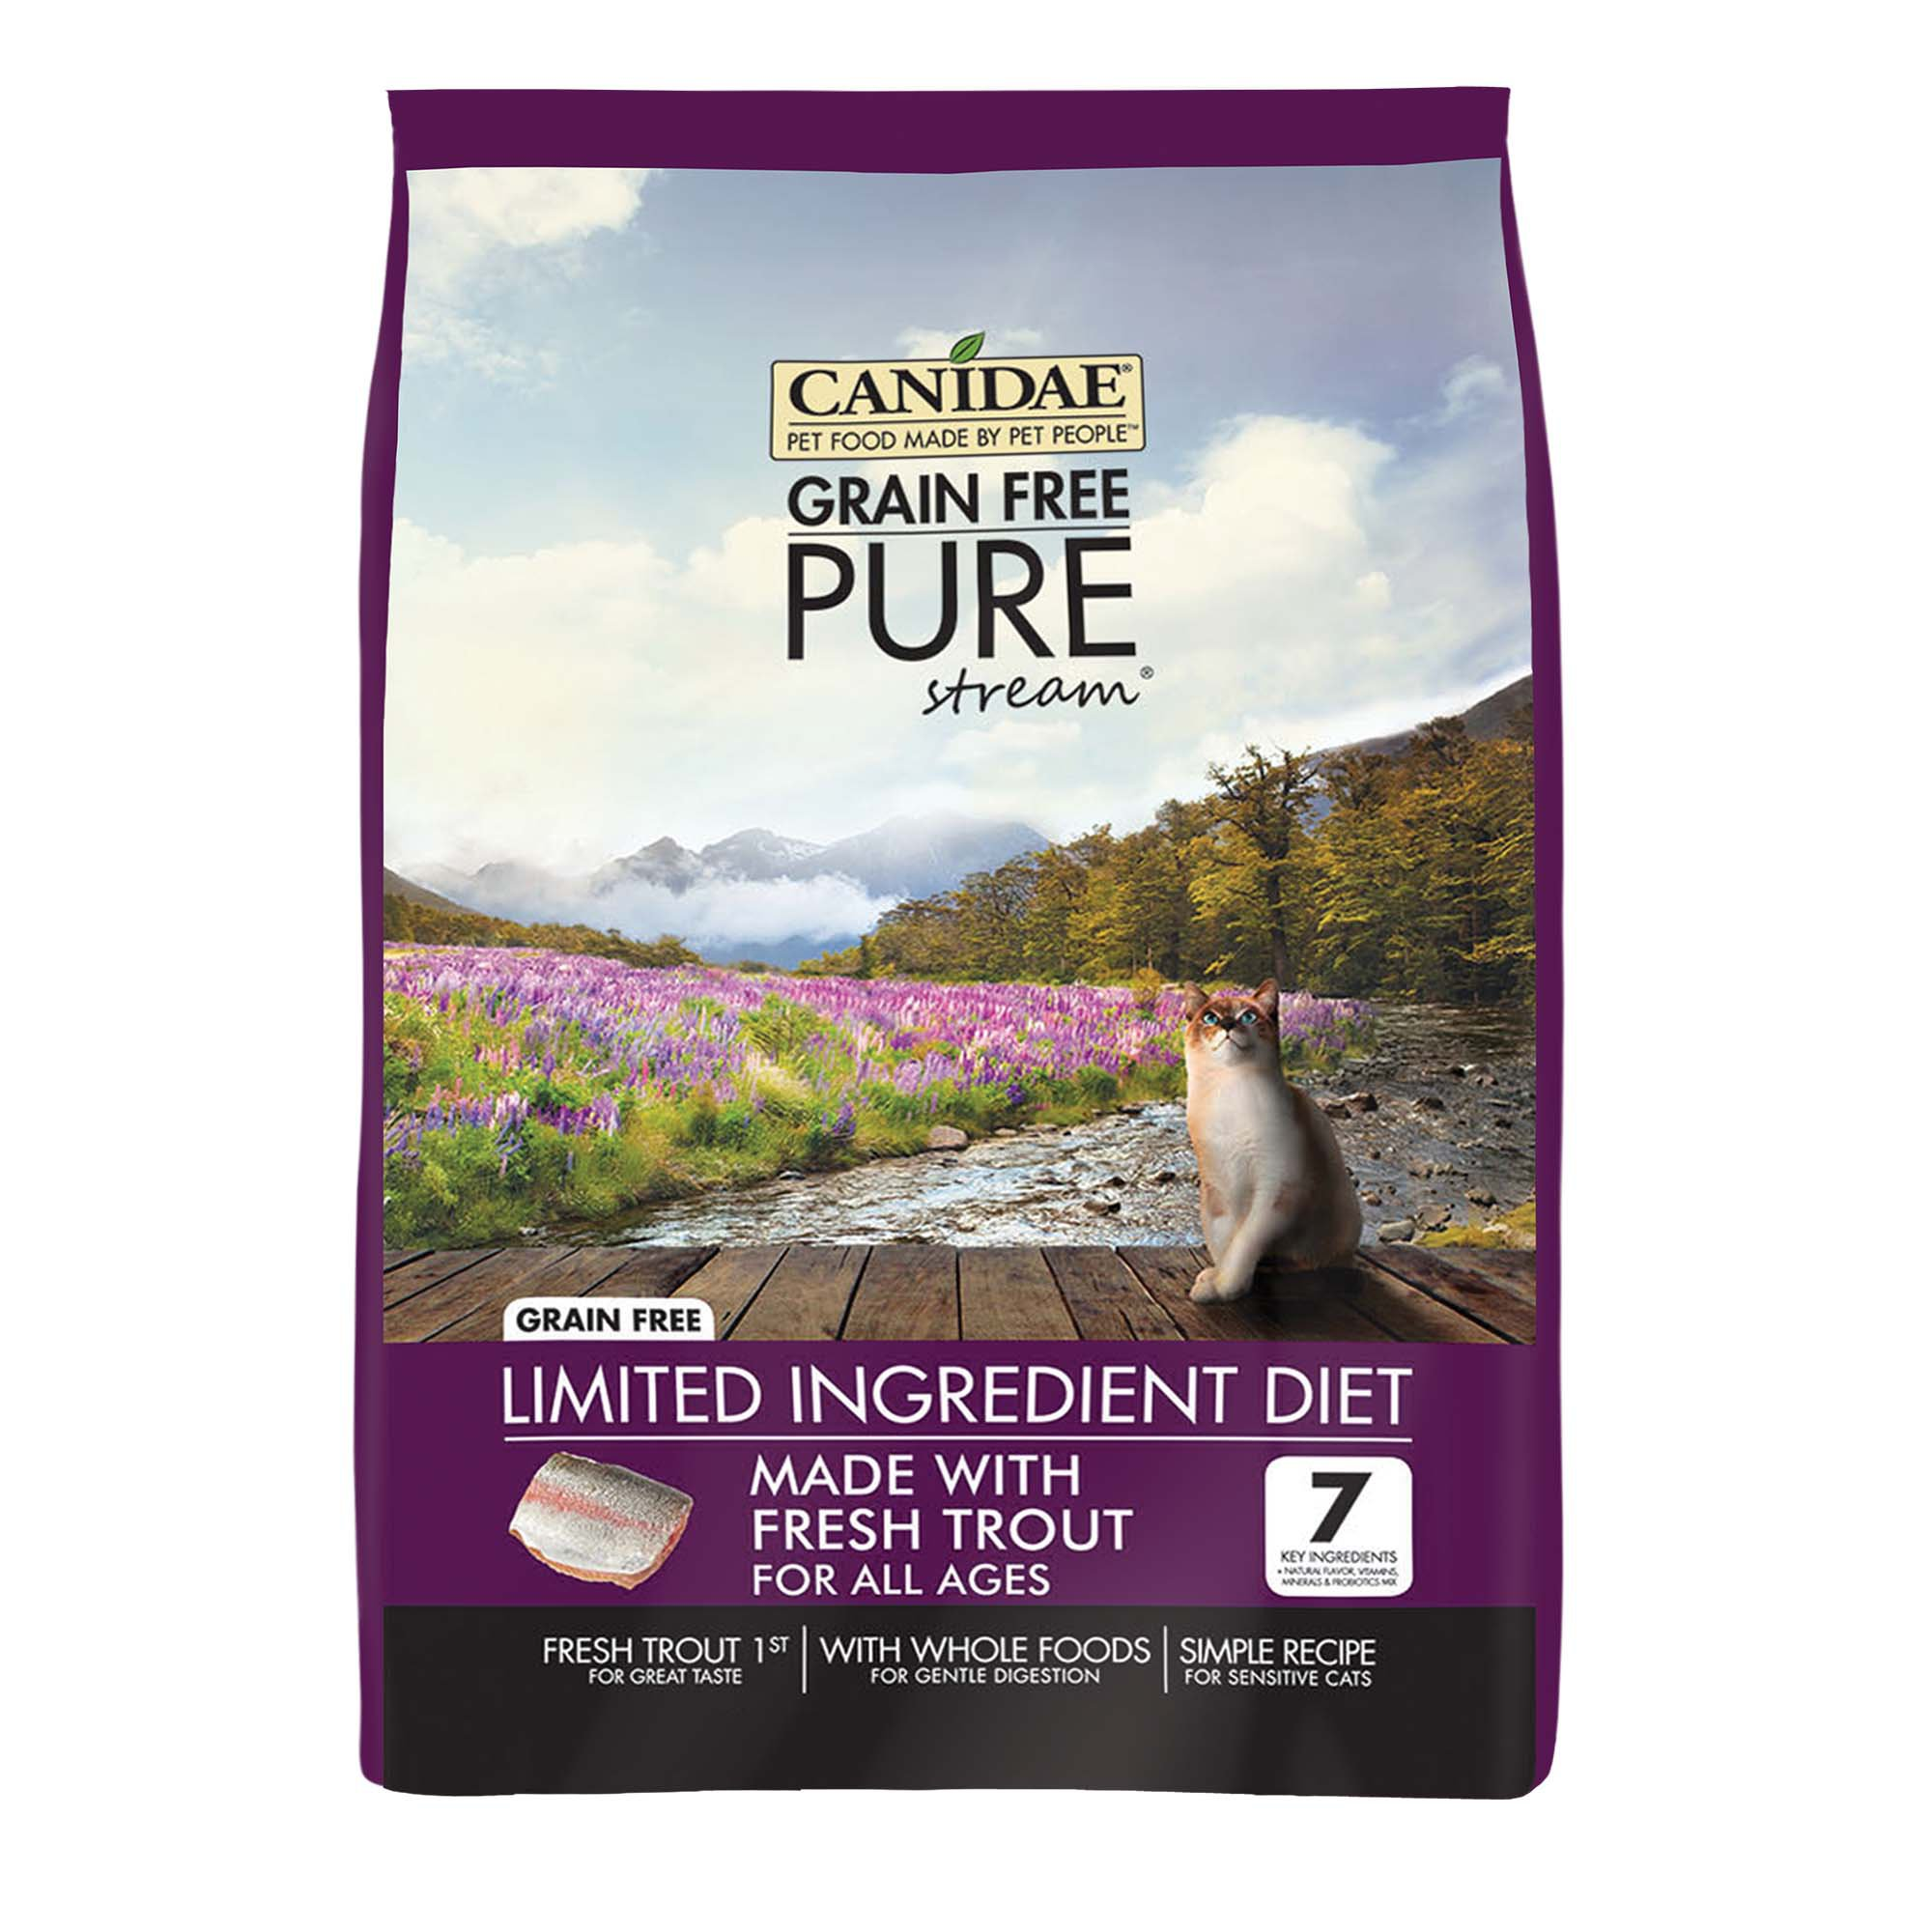 CANIDAE Grain Free PURE Stream Adult Cat Formula Made With Fresh Trout